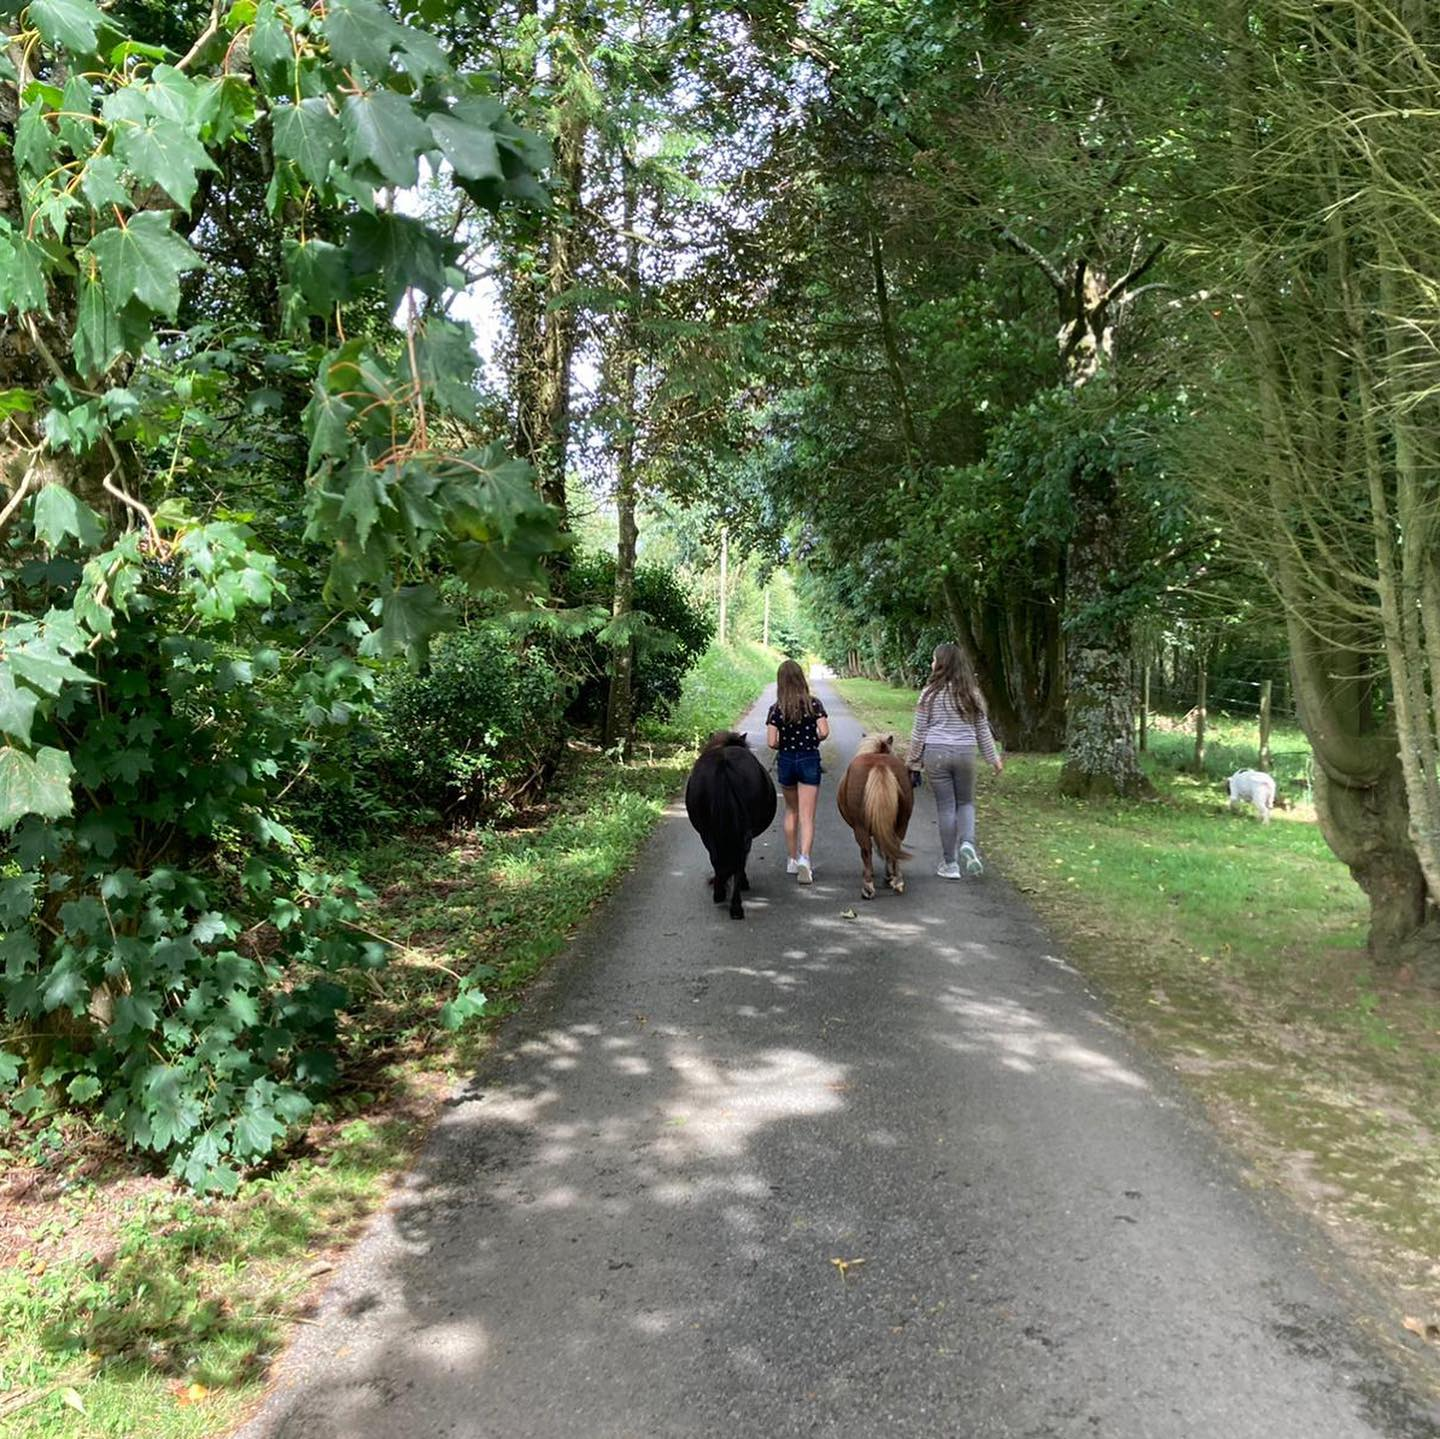 Tree covered driveway with two young girls leading shetland ponies